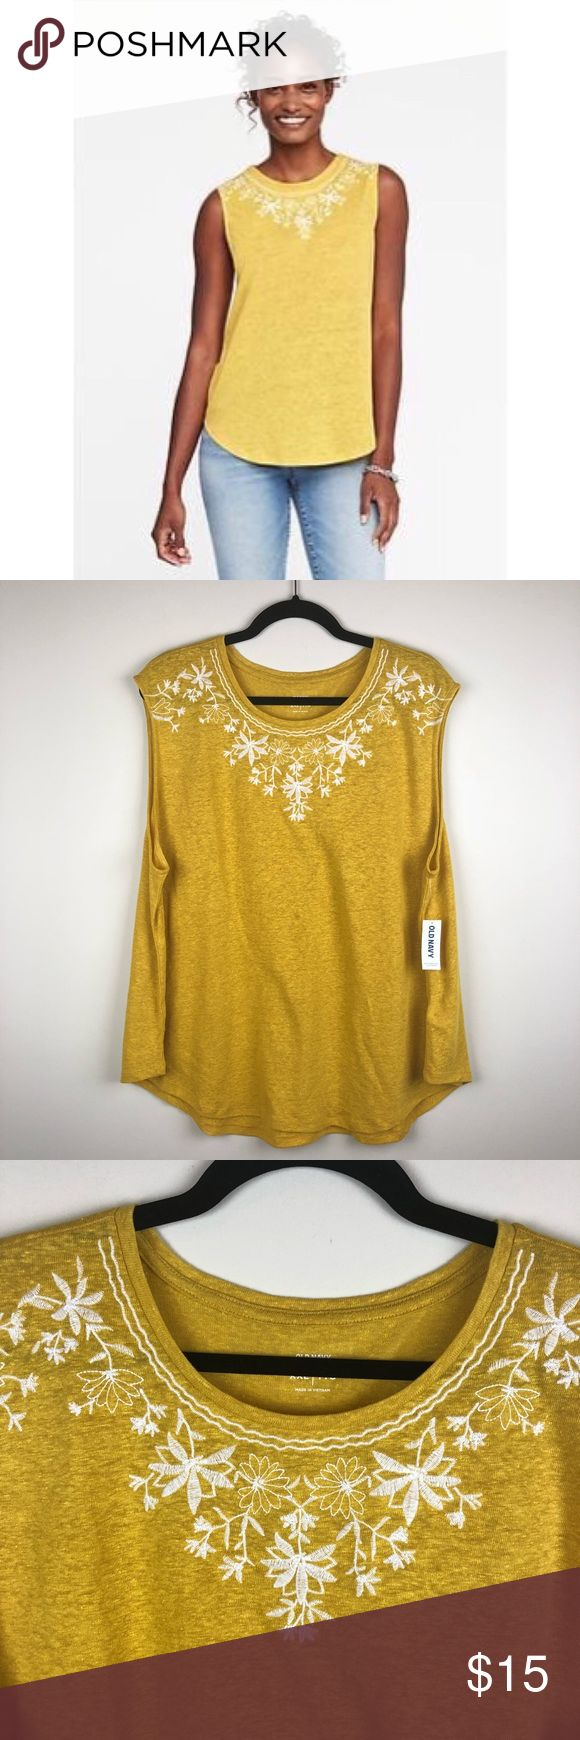 """Old Navy Floral Embroidered Linen Blend Tank Gold Beautiful top by Old Navy. Size XXL. Brand new with tags. Armpit to armpit - 24 1/2"""", length - 29"""". 52% linen, 48% polyester. Machine wash. Rib-knit crew neck. Contrasting embroidered flowers at front yoke. Sleeveless arm openings. Curved hem. Soft, lightweight linen-blend jersey. Old Navy Tops"""